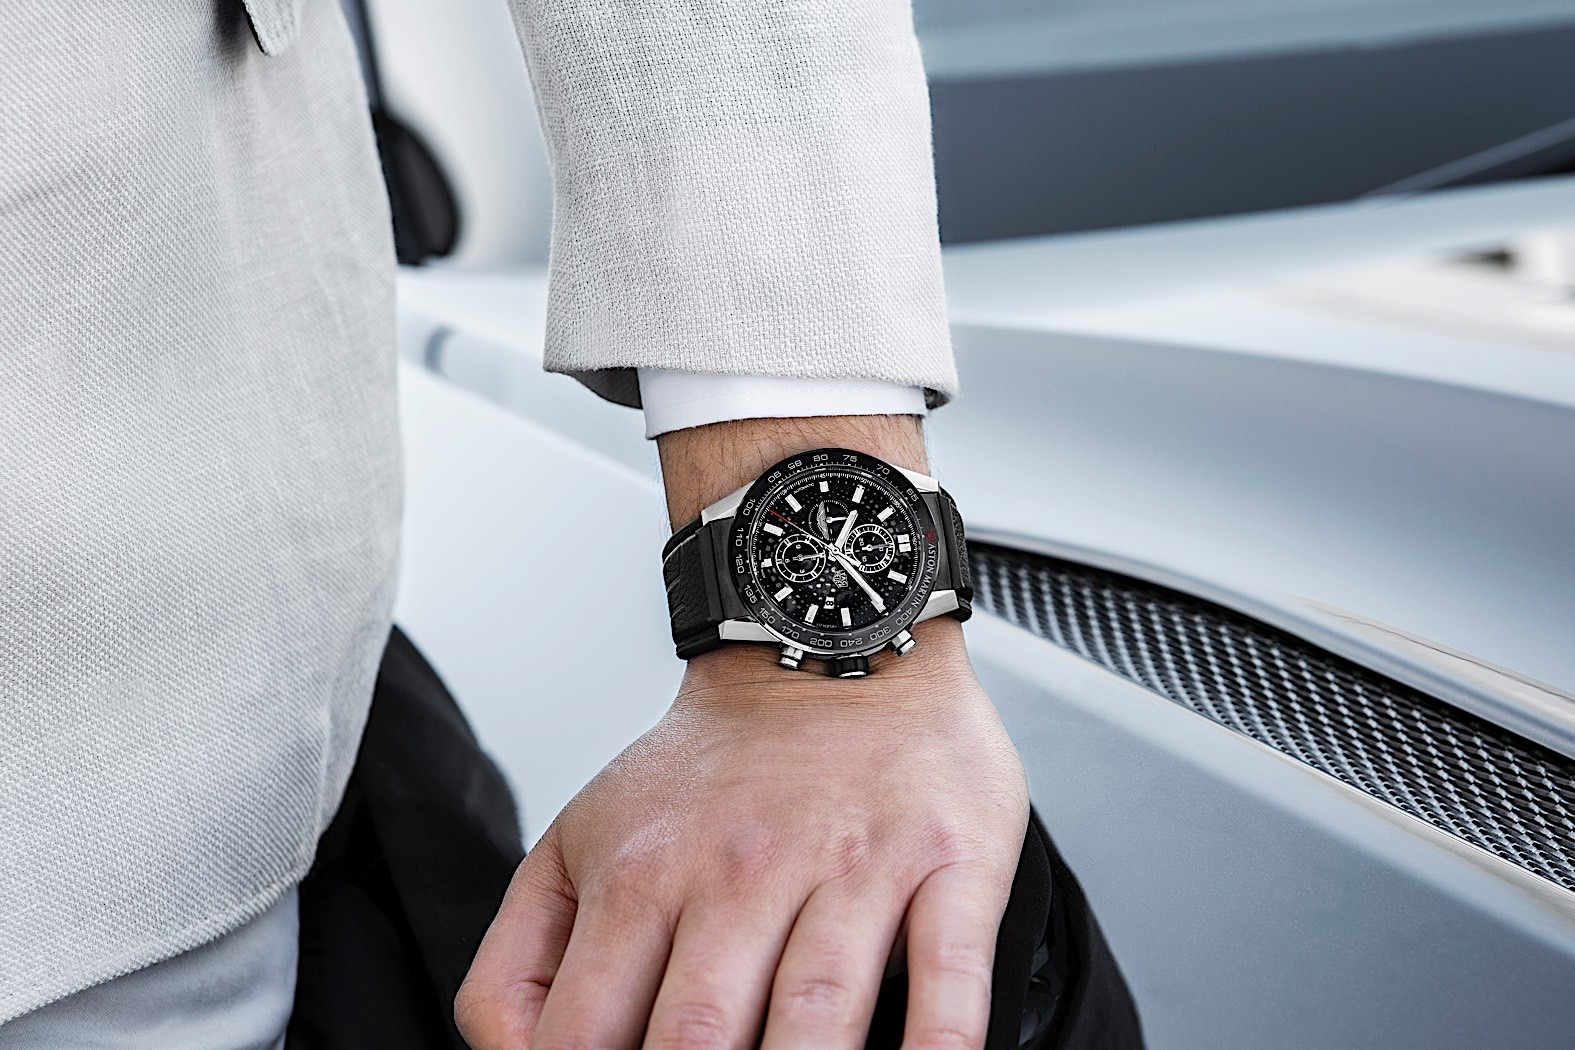 Tag Heuer Aston Martin Carrera Watch Goes On Sale For 5 250 Pounds Autoevolution